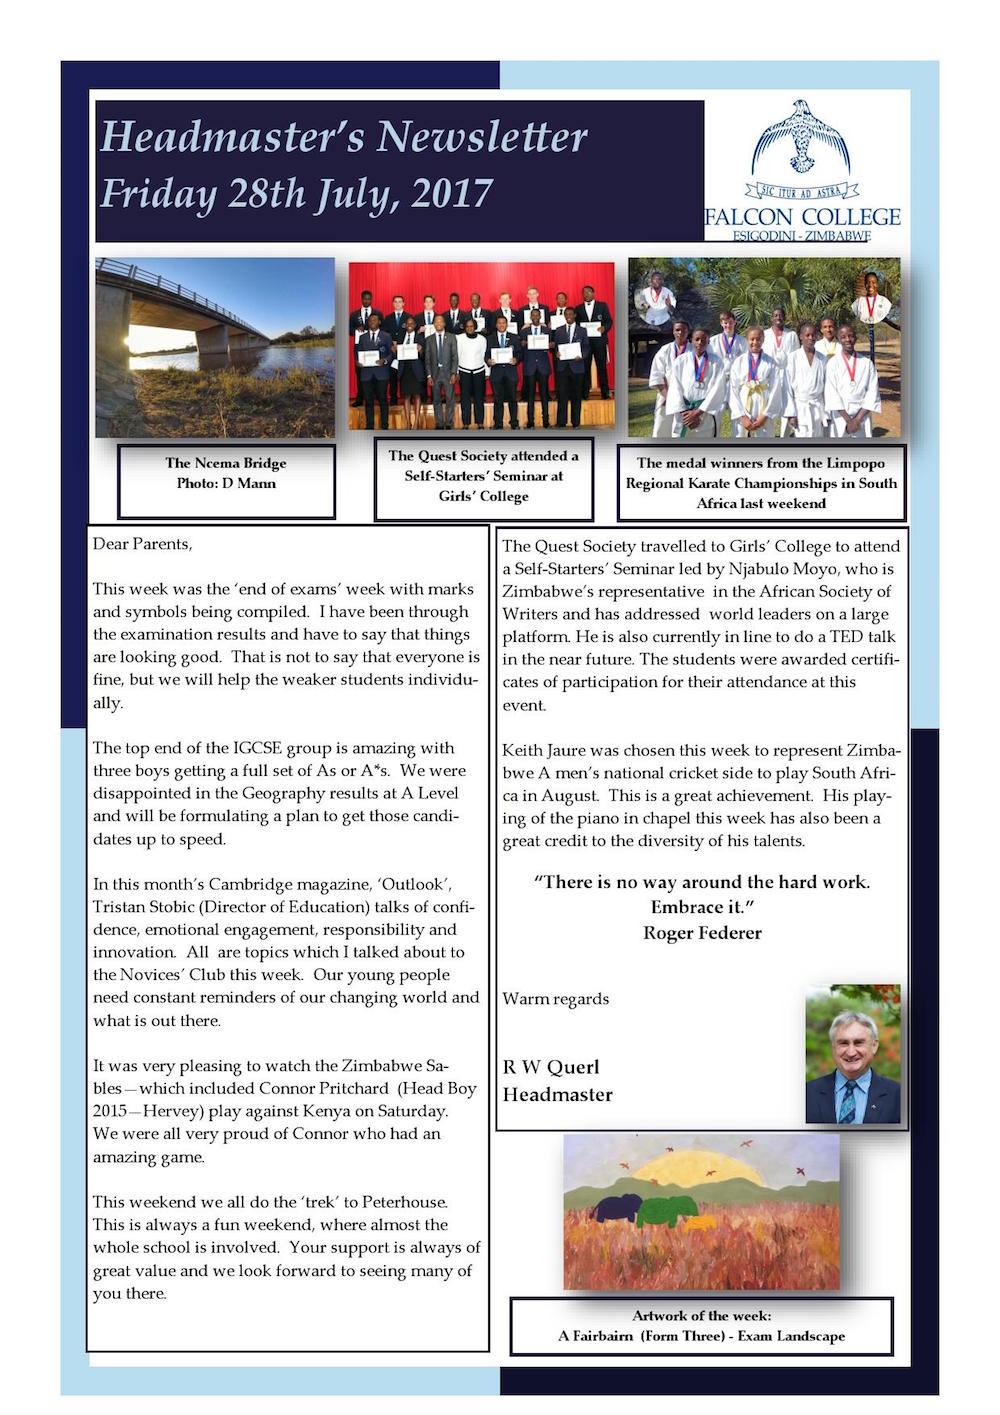 Headmaster's Newsletter - Friday 28th July 2017   Falcon College